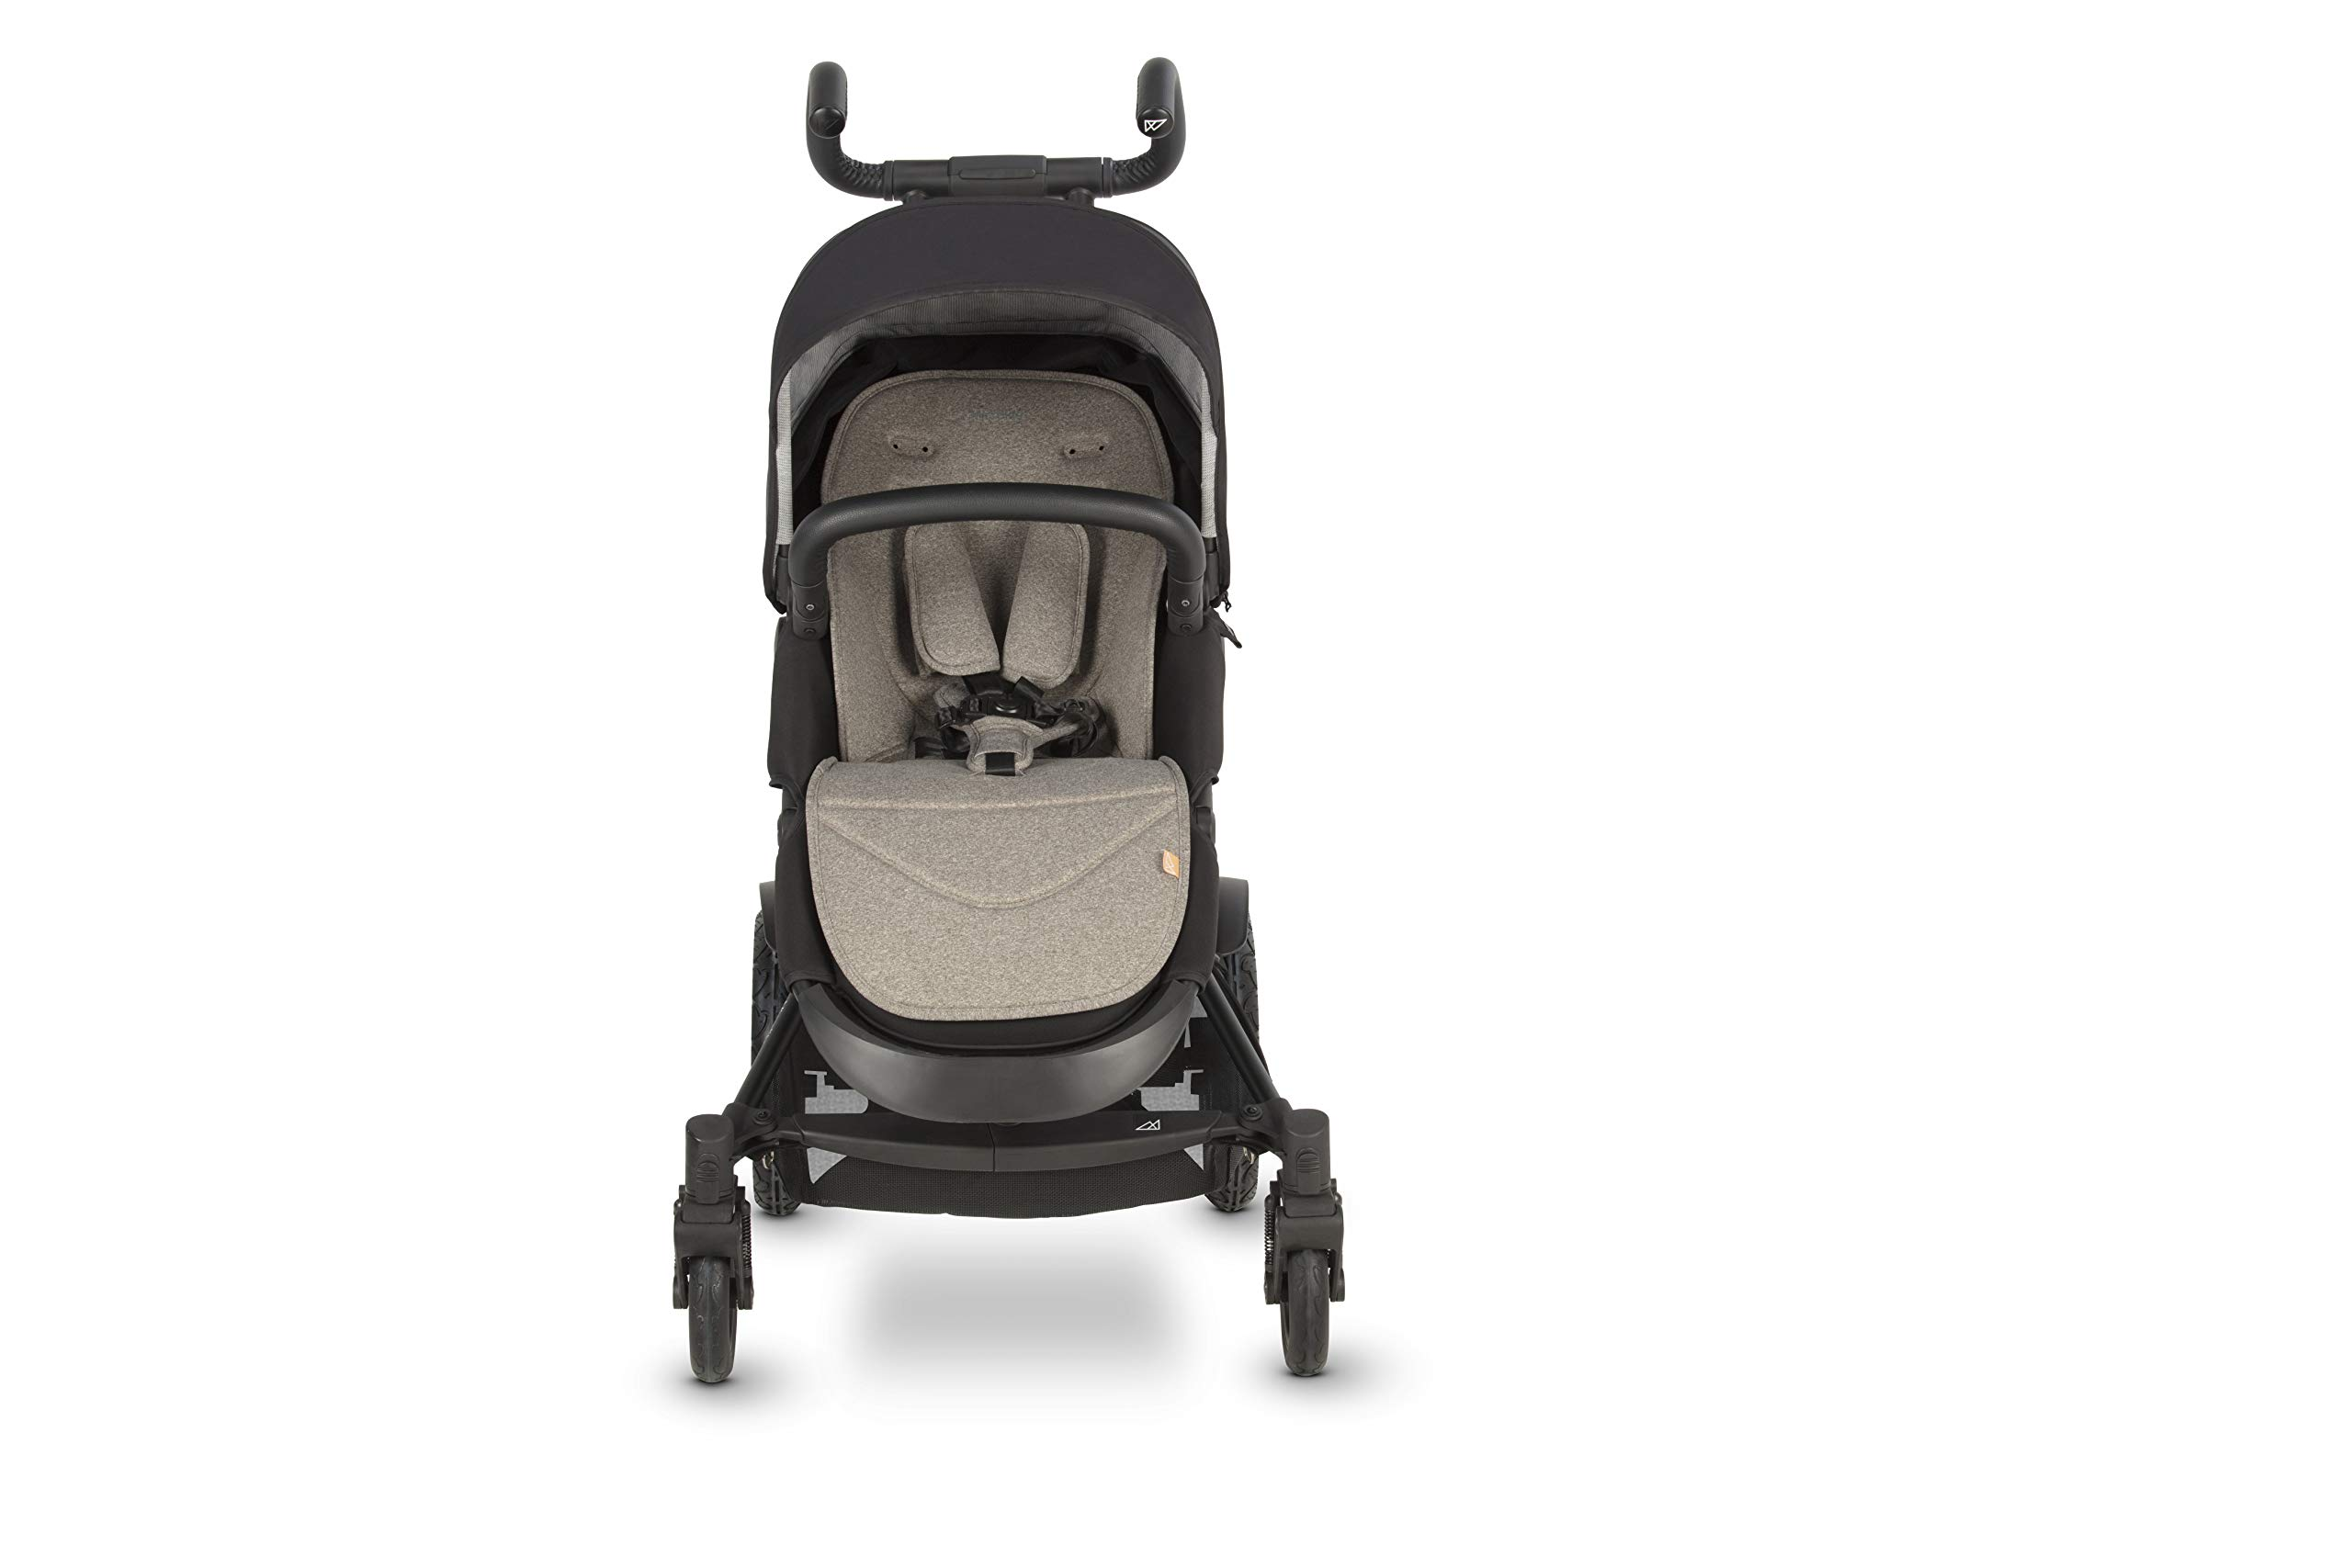 Micralite TwoFold Pushchair - Carbon. Suitable from 6 Months to 4 Years. Add Carrycot to Convert to Travel System Micralite QUICK FOLD - The TwoFold folds into one piece, with one movement. Once folded it free stands for ease of storage at home or out and about. To transport when not in use simply drag it along behind you. ALL-TERRAIN WHEELS - Large air filled back tyres, high mud guards and great ground clearance mean you can still go anywhere even with two in tow. You don't have to worry about getting a puncture either as the pneumatic tyres are lined with Kevlar - the same fibre used in bullet proof vests! WEATHERPROOF FABRICS - Dressed with signature Micralite high quality weatherproof fabrics, the hood of the TwoFold turns water just aswell as it deflects the sun's harmful rays. We also include a storm cover for more extreme weather - so nothing can stop you and your little one from getting out there. 7